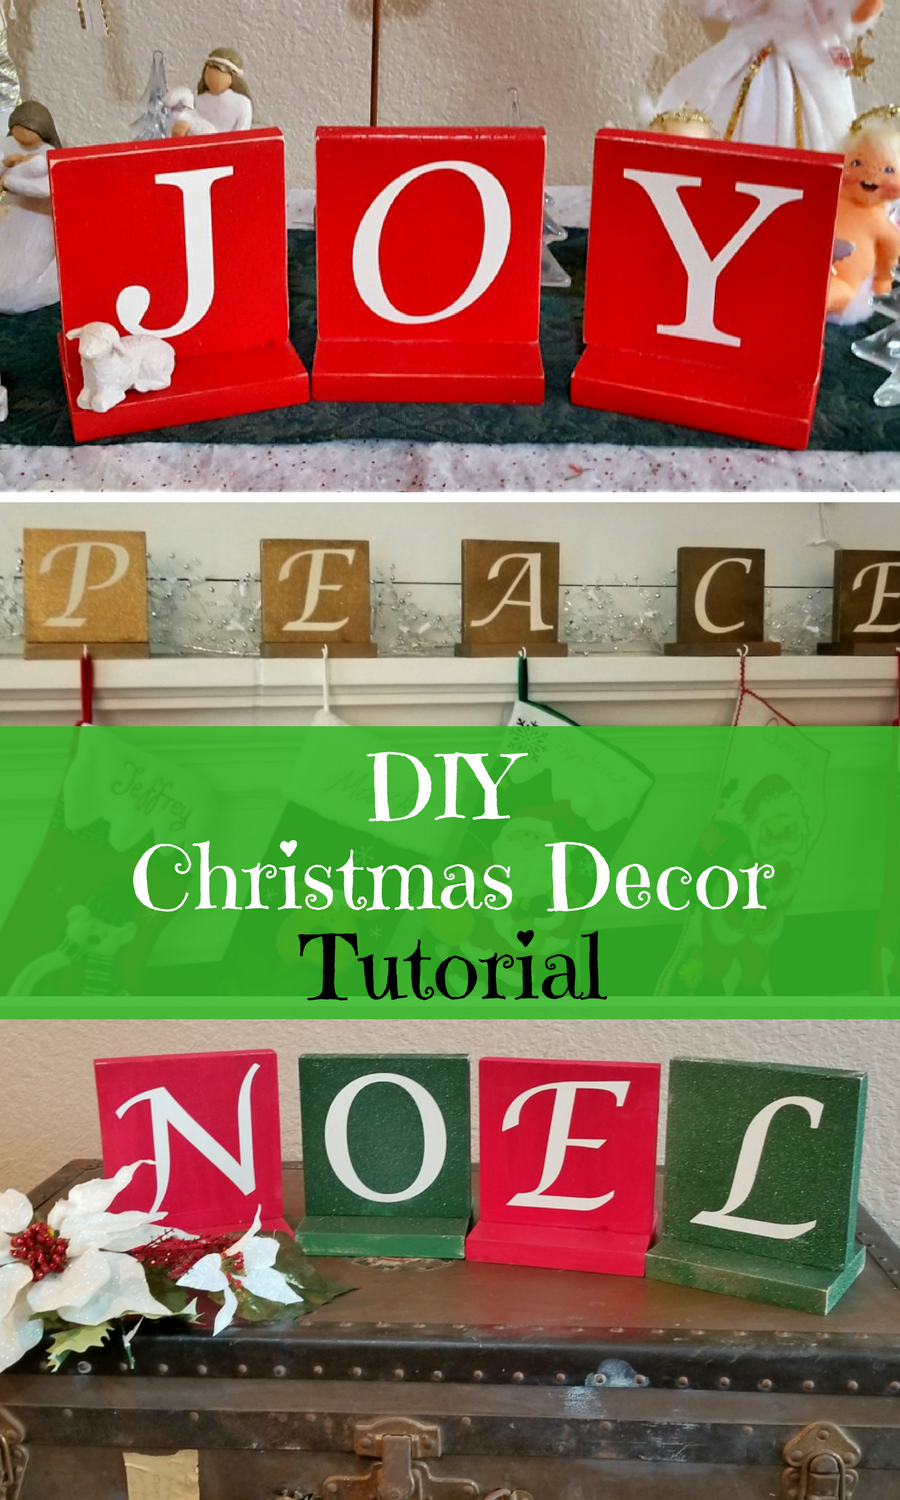 Handmade Holiday Decor